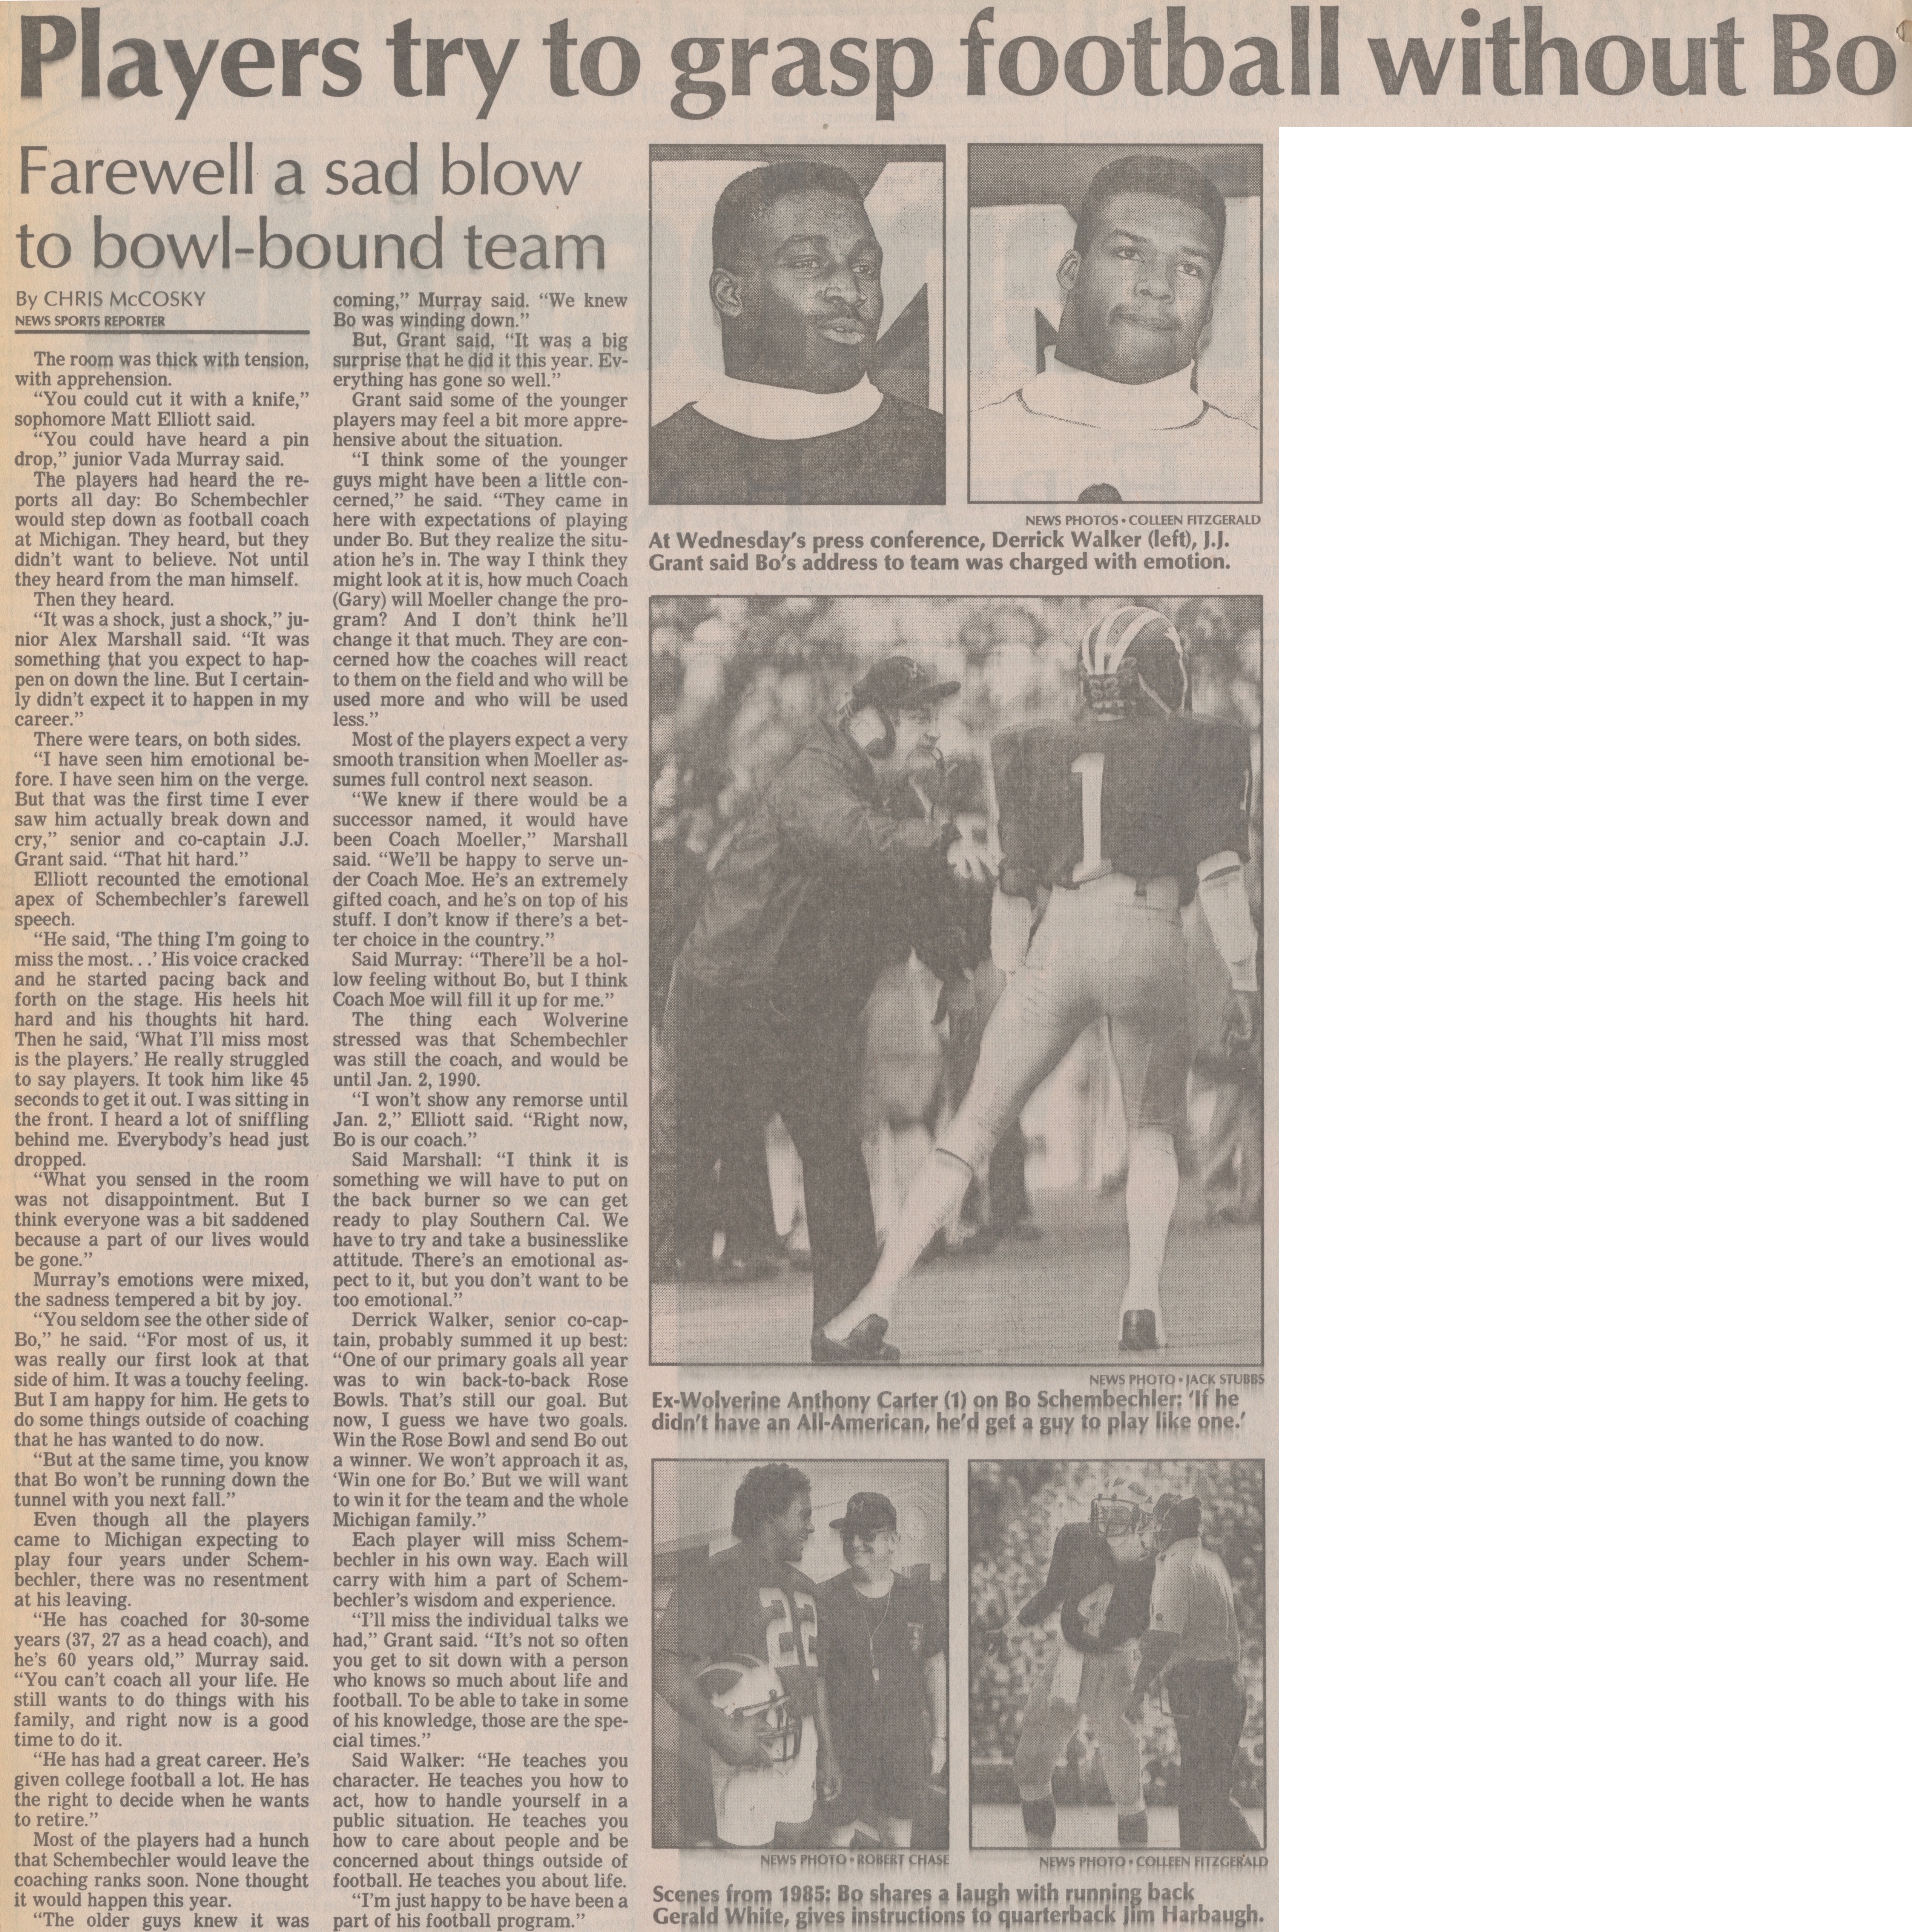 Players Try To Grasp Football Without Bo image